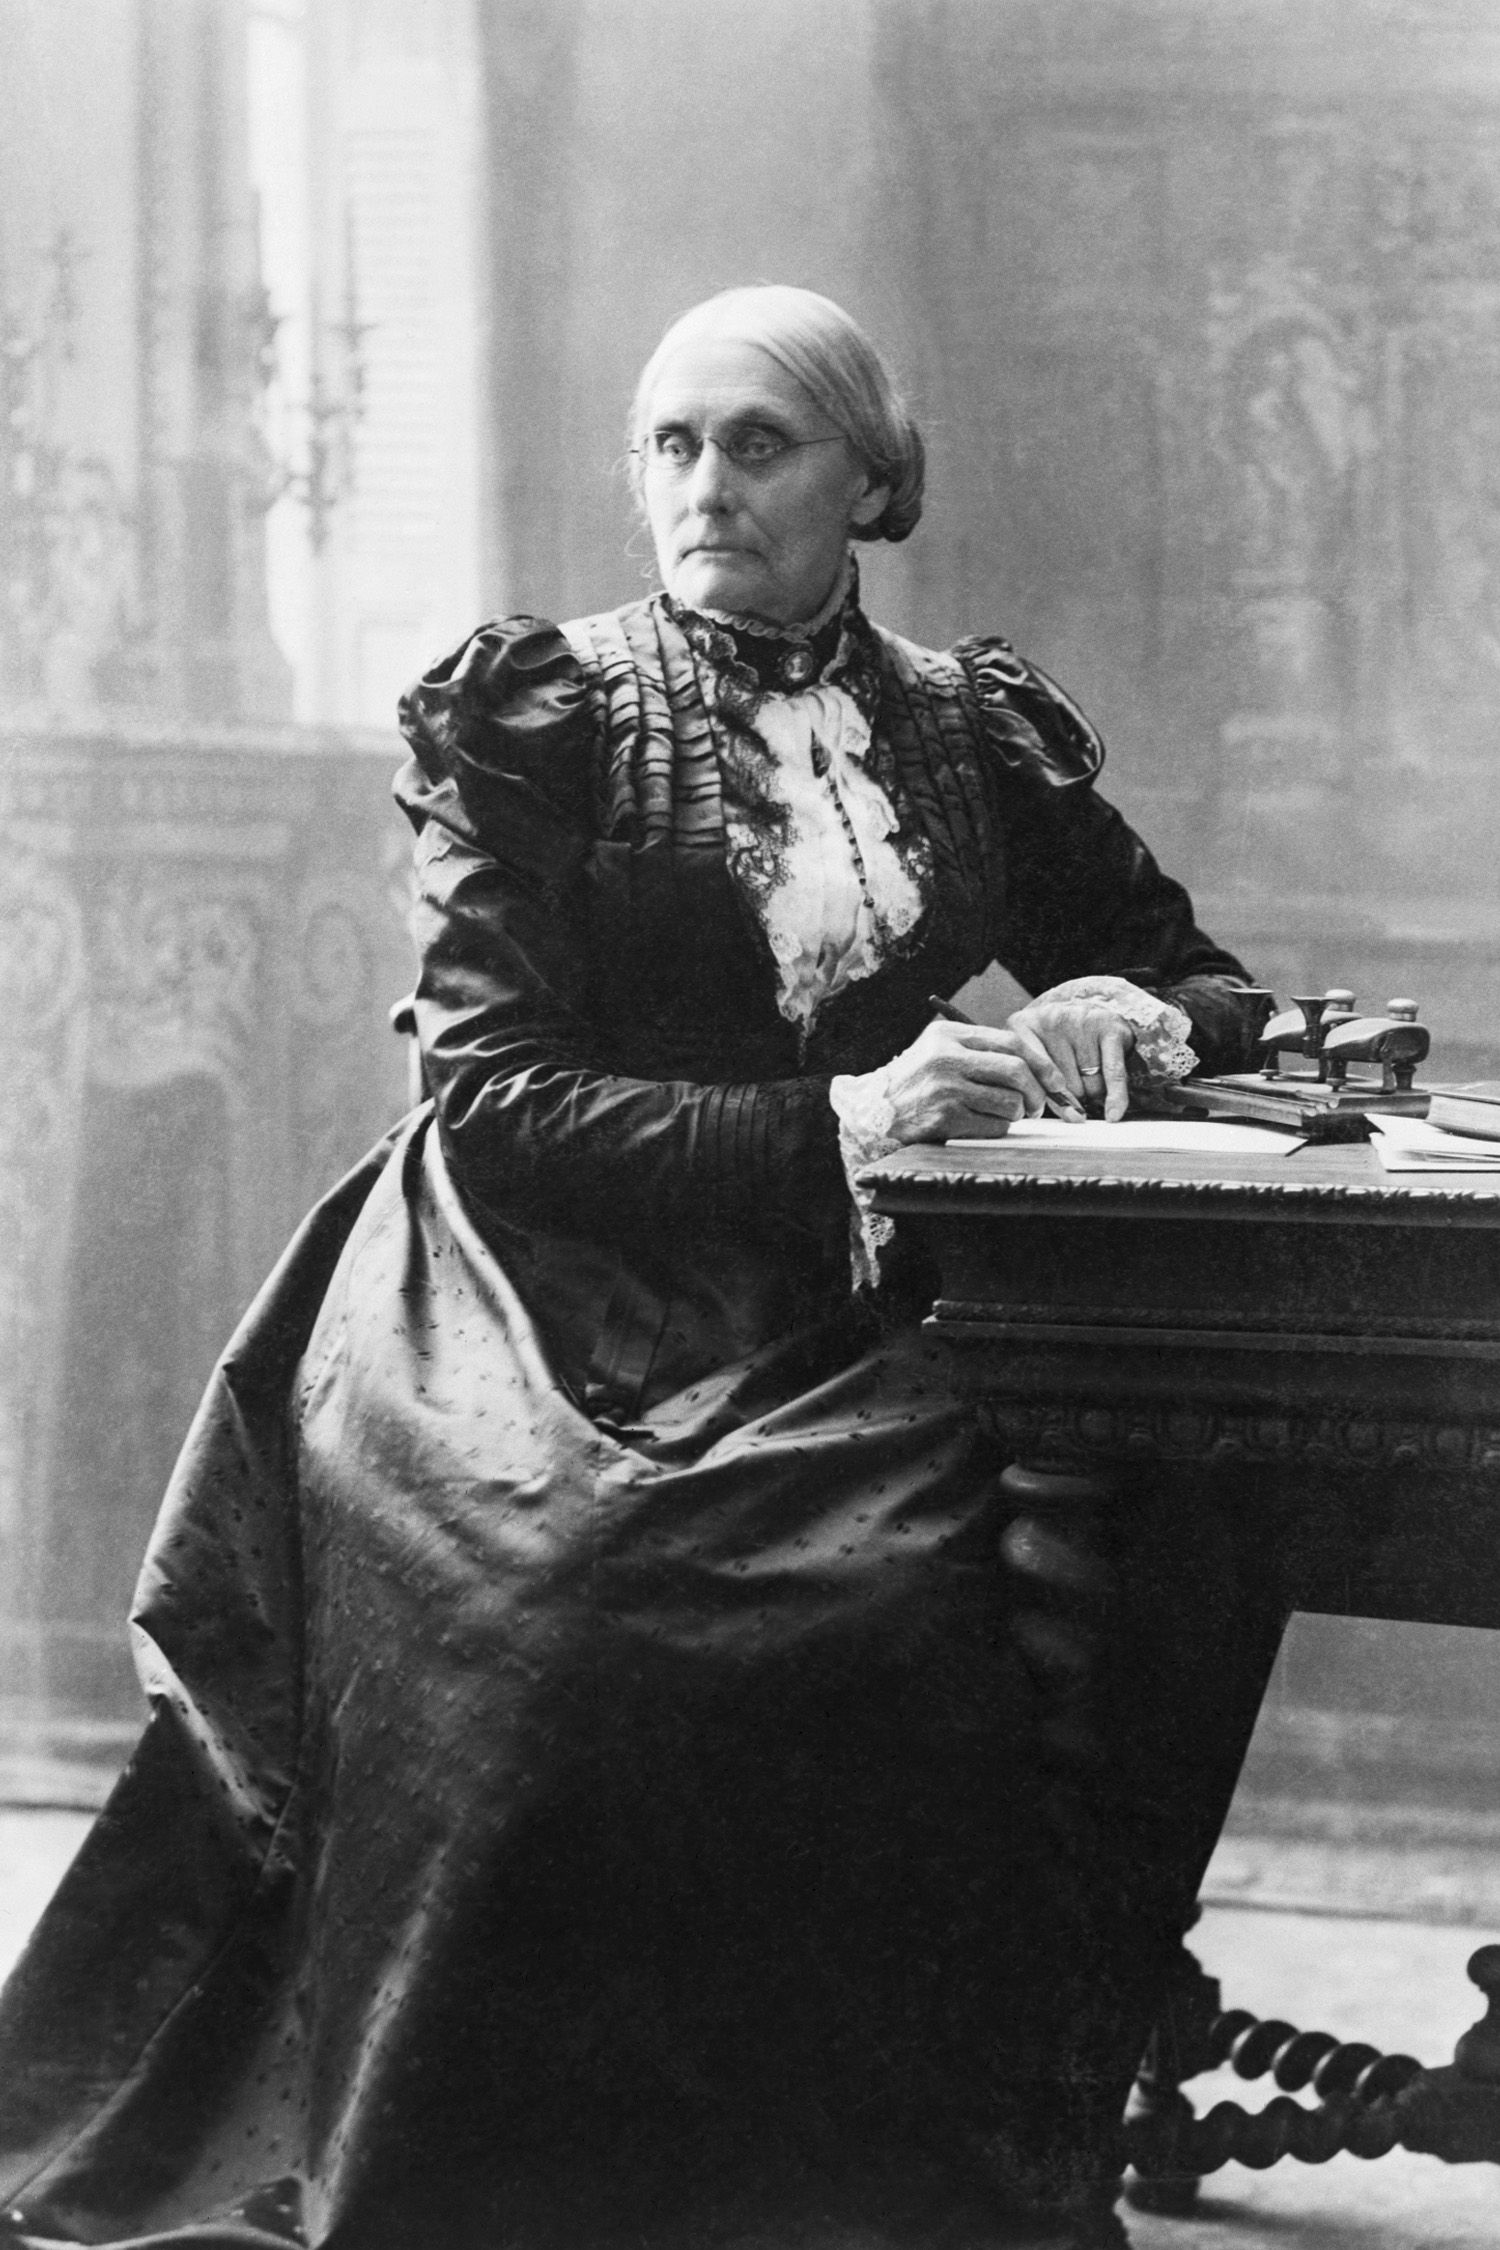 "<p><em data-redactor-tag=""em"">Earned women the right to vote</em></p><p>Susan B. Anthony, an American social rights activists, was instrumental in a number of women's issues. Her work, which also included campaigning for equal rights for both women and African-Americans and working to abolish slavery, was extensive. Beyond the formation&nbsp&#x3B;of the National American Woman Suffrage Association,&nbsp&#x3B;Anthony and Elizabeth Cady Stanton collected signatures to petition Congress for the right to vote, urging politicians to consider an amendment to the Constitution. It wasn't until after Anthony's death that the 19th Amendment, also known as the Susan B. Anthony Amendment, was passed in 1919.</p>"